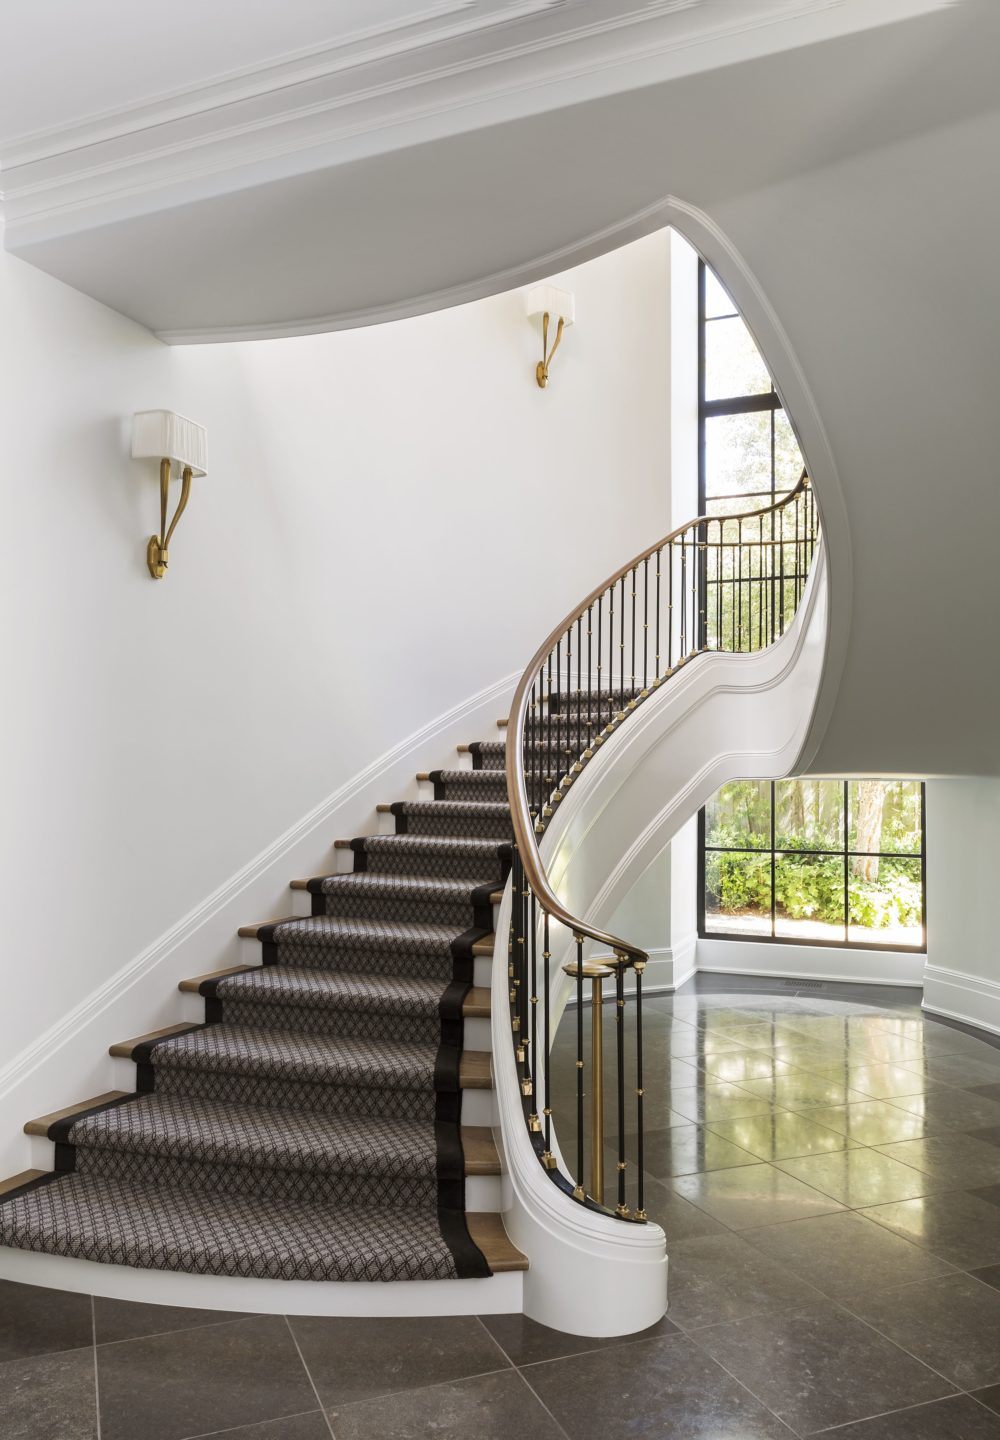 studio-william-hefner-Kohn__Foyer__02__Stairs